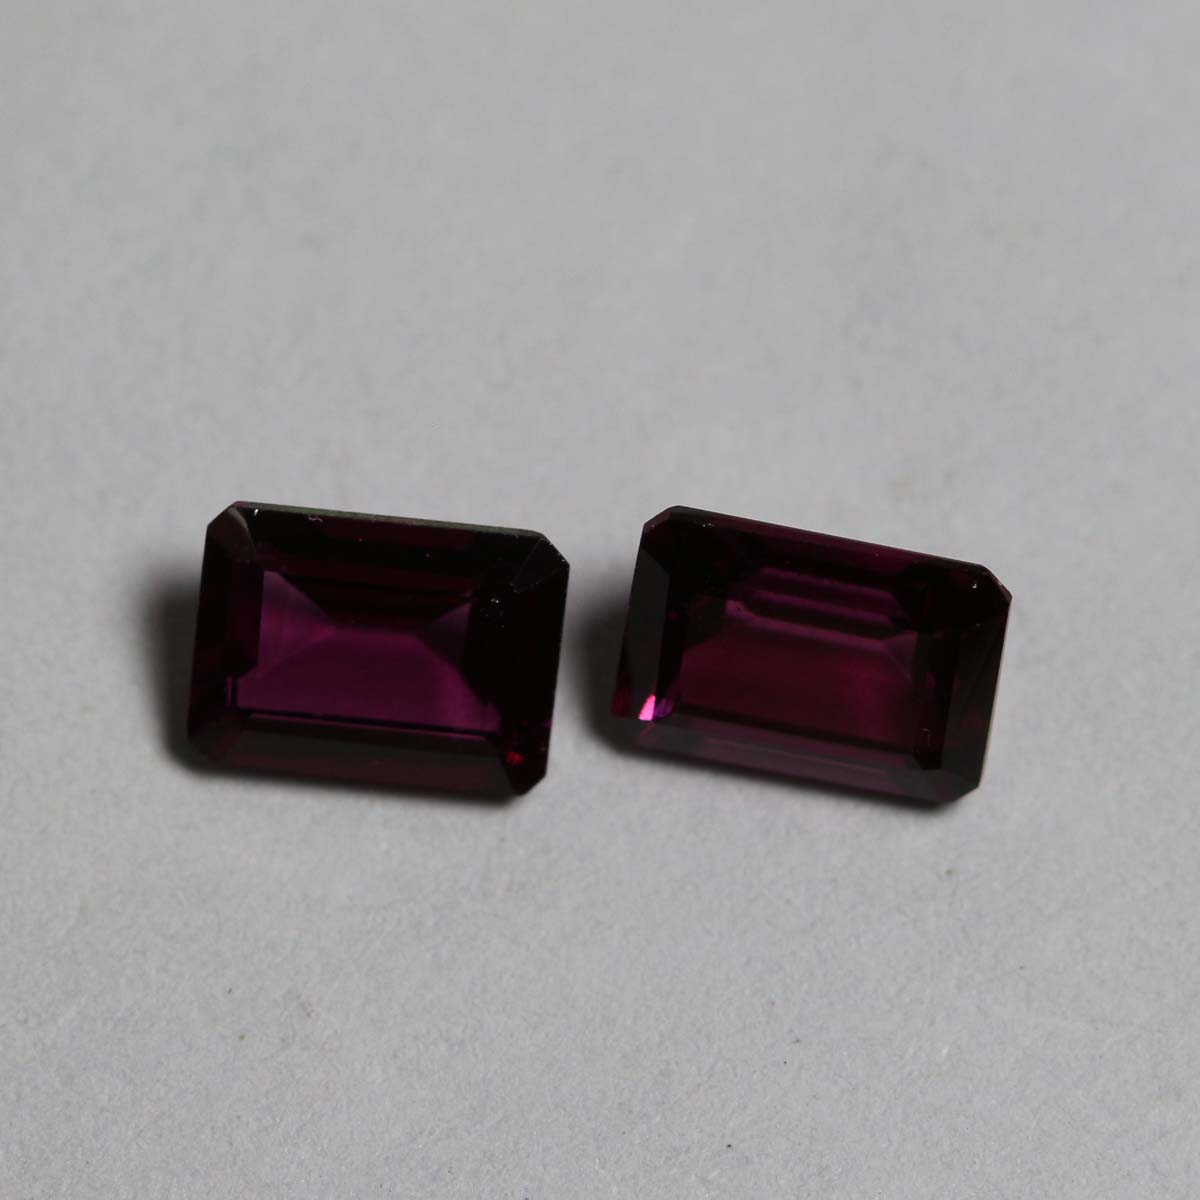 7x5mm Natural Rhodolite Garnet Faceted Cut Octagon 5 Pieces Lot Red Pink Color Top Quality Loose Gemstone